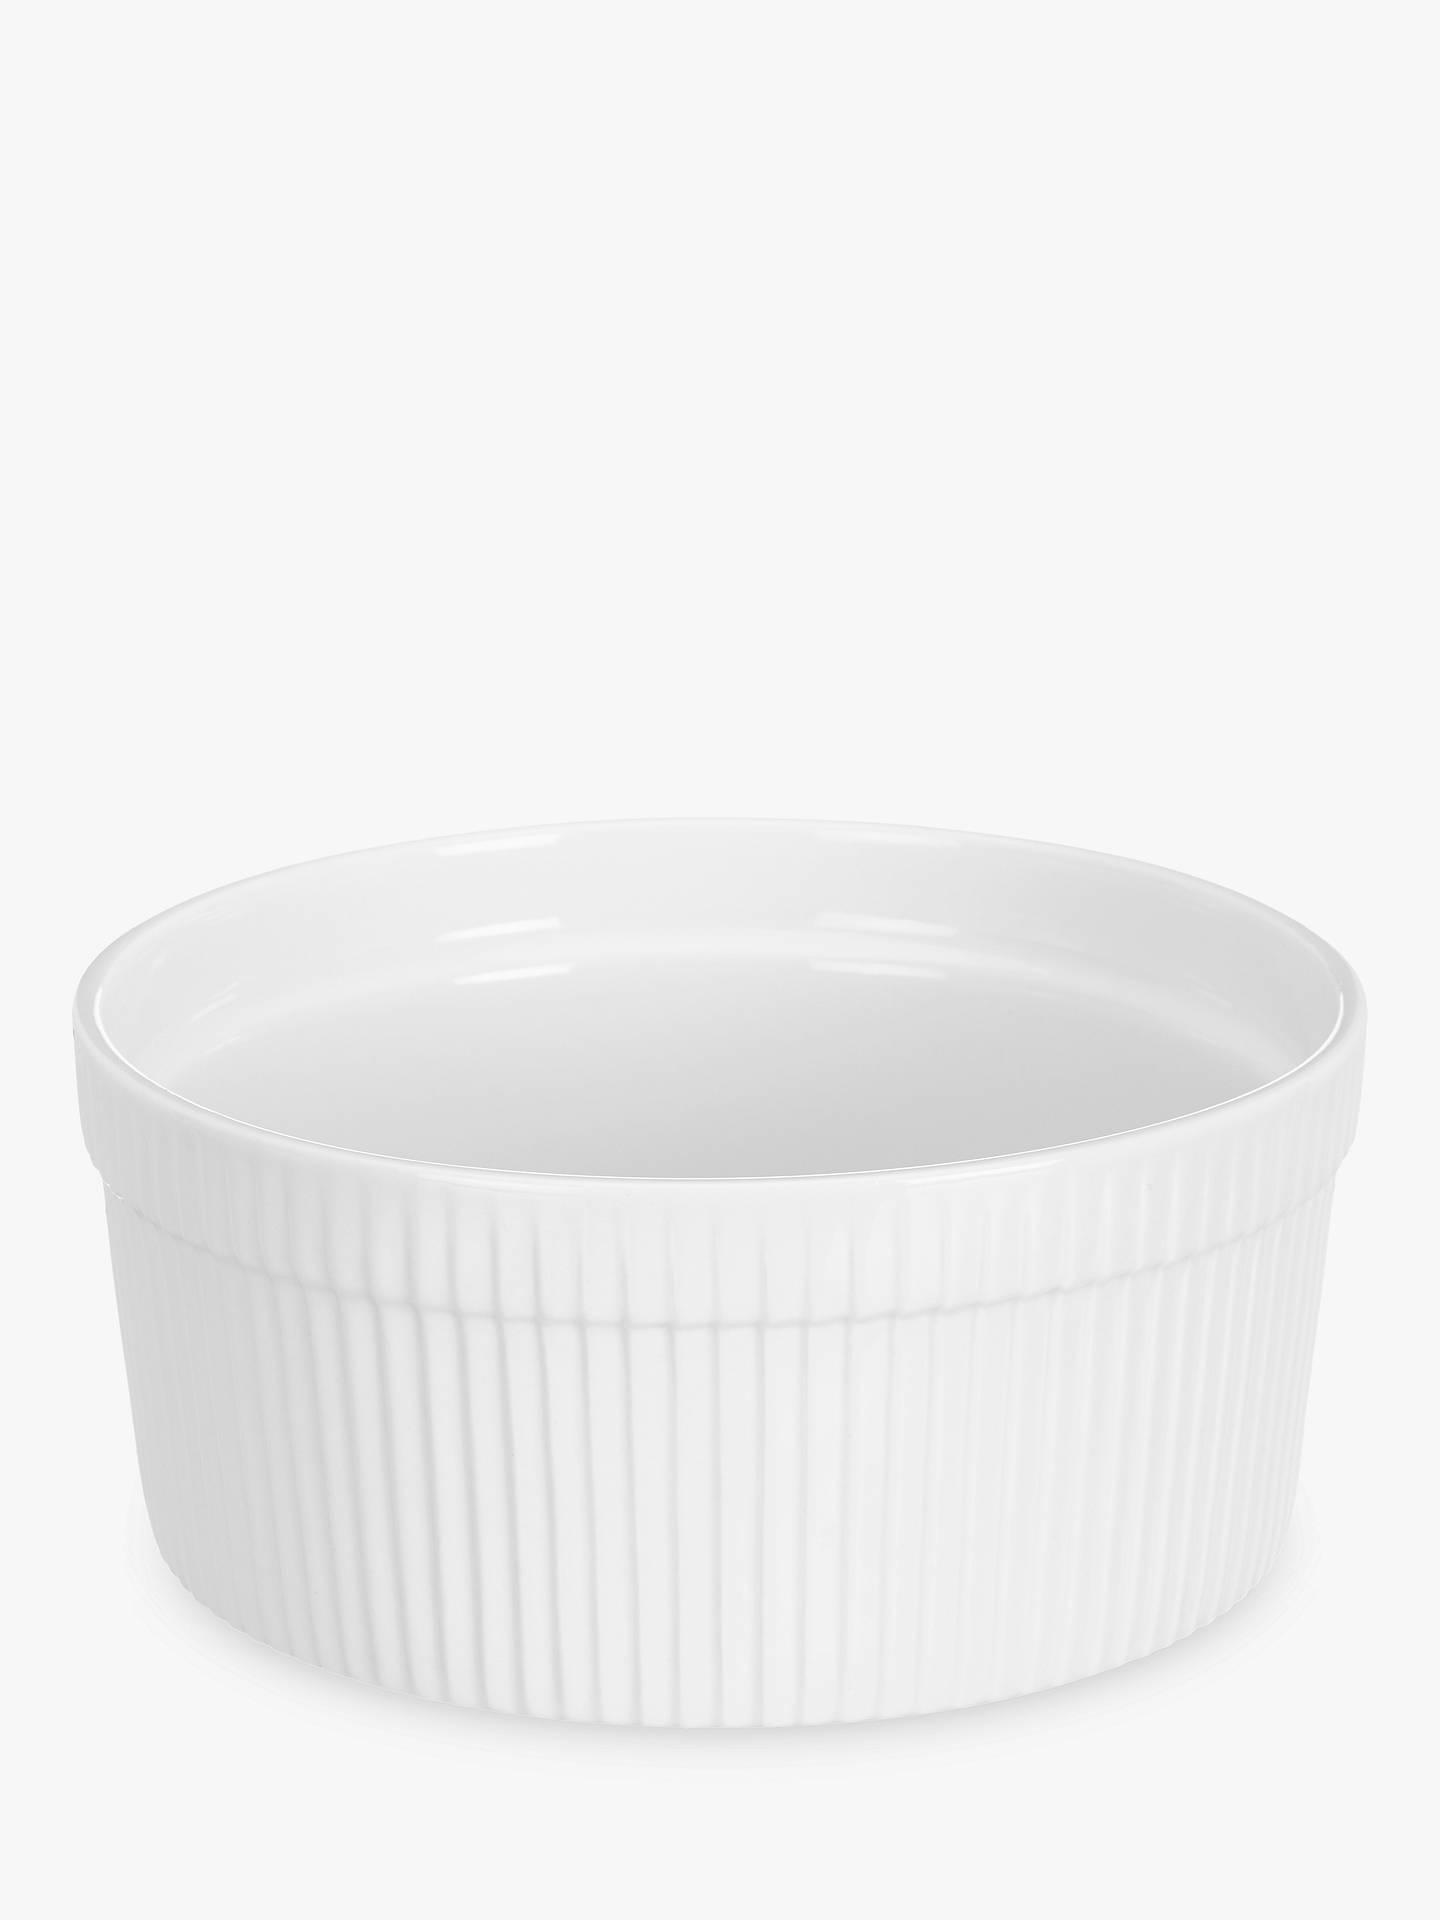 BuyJohn Lewis & Partners Porcelain Round Soufflé Oven Dish, 19cm, Set of 2, White Online at johnlewis.com